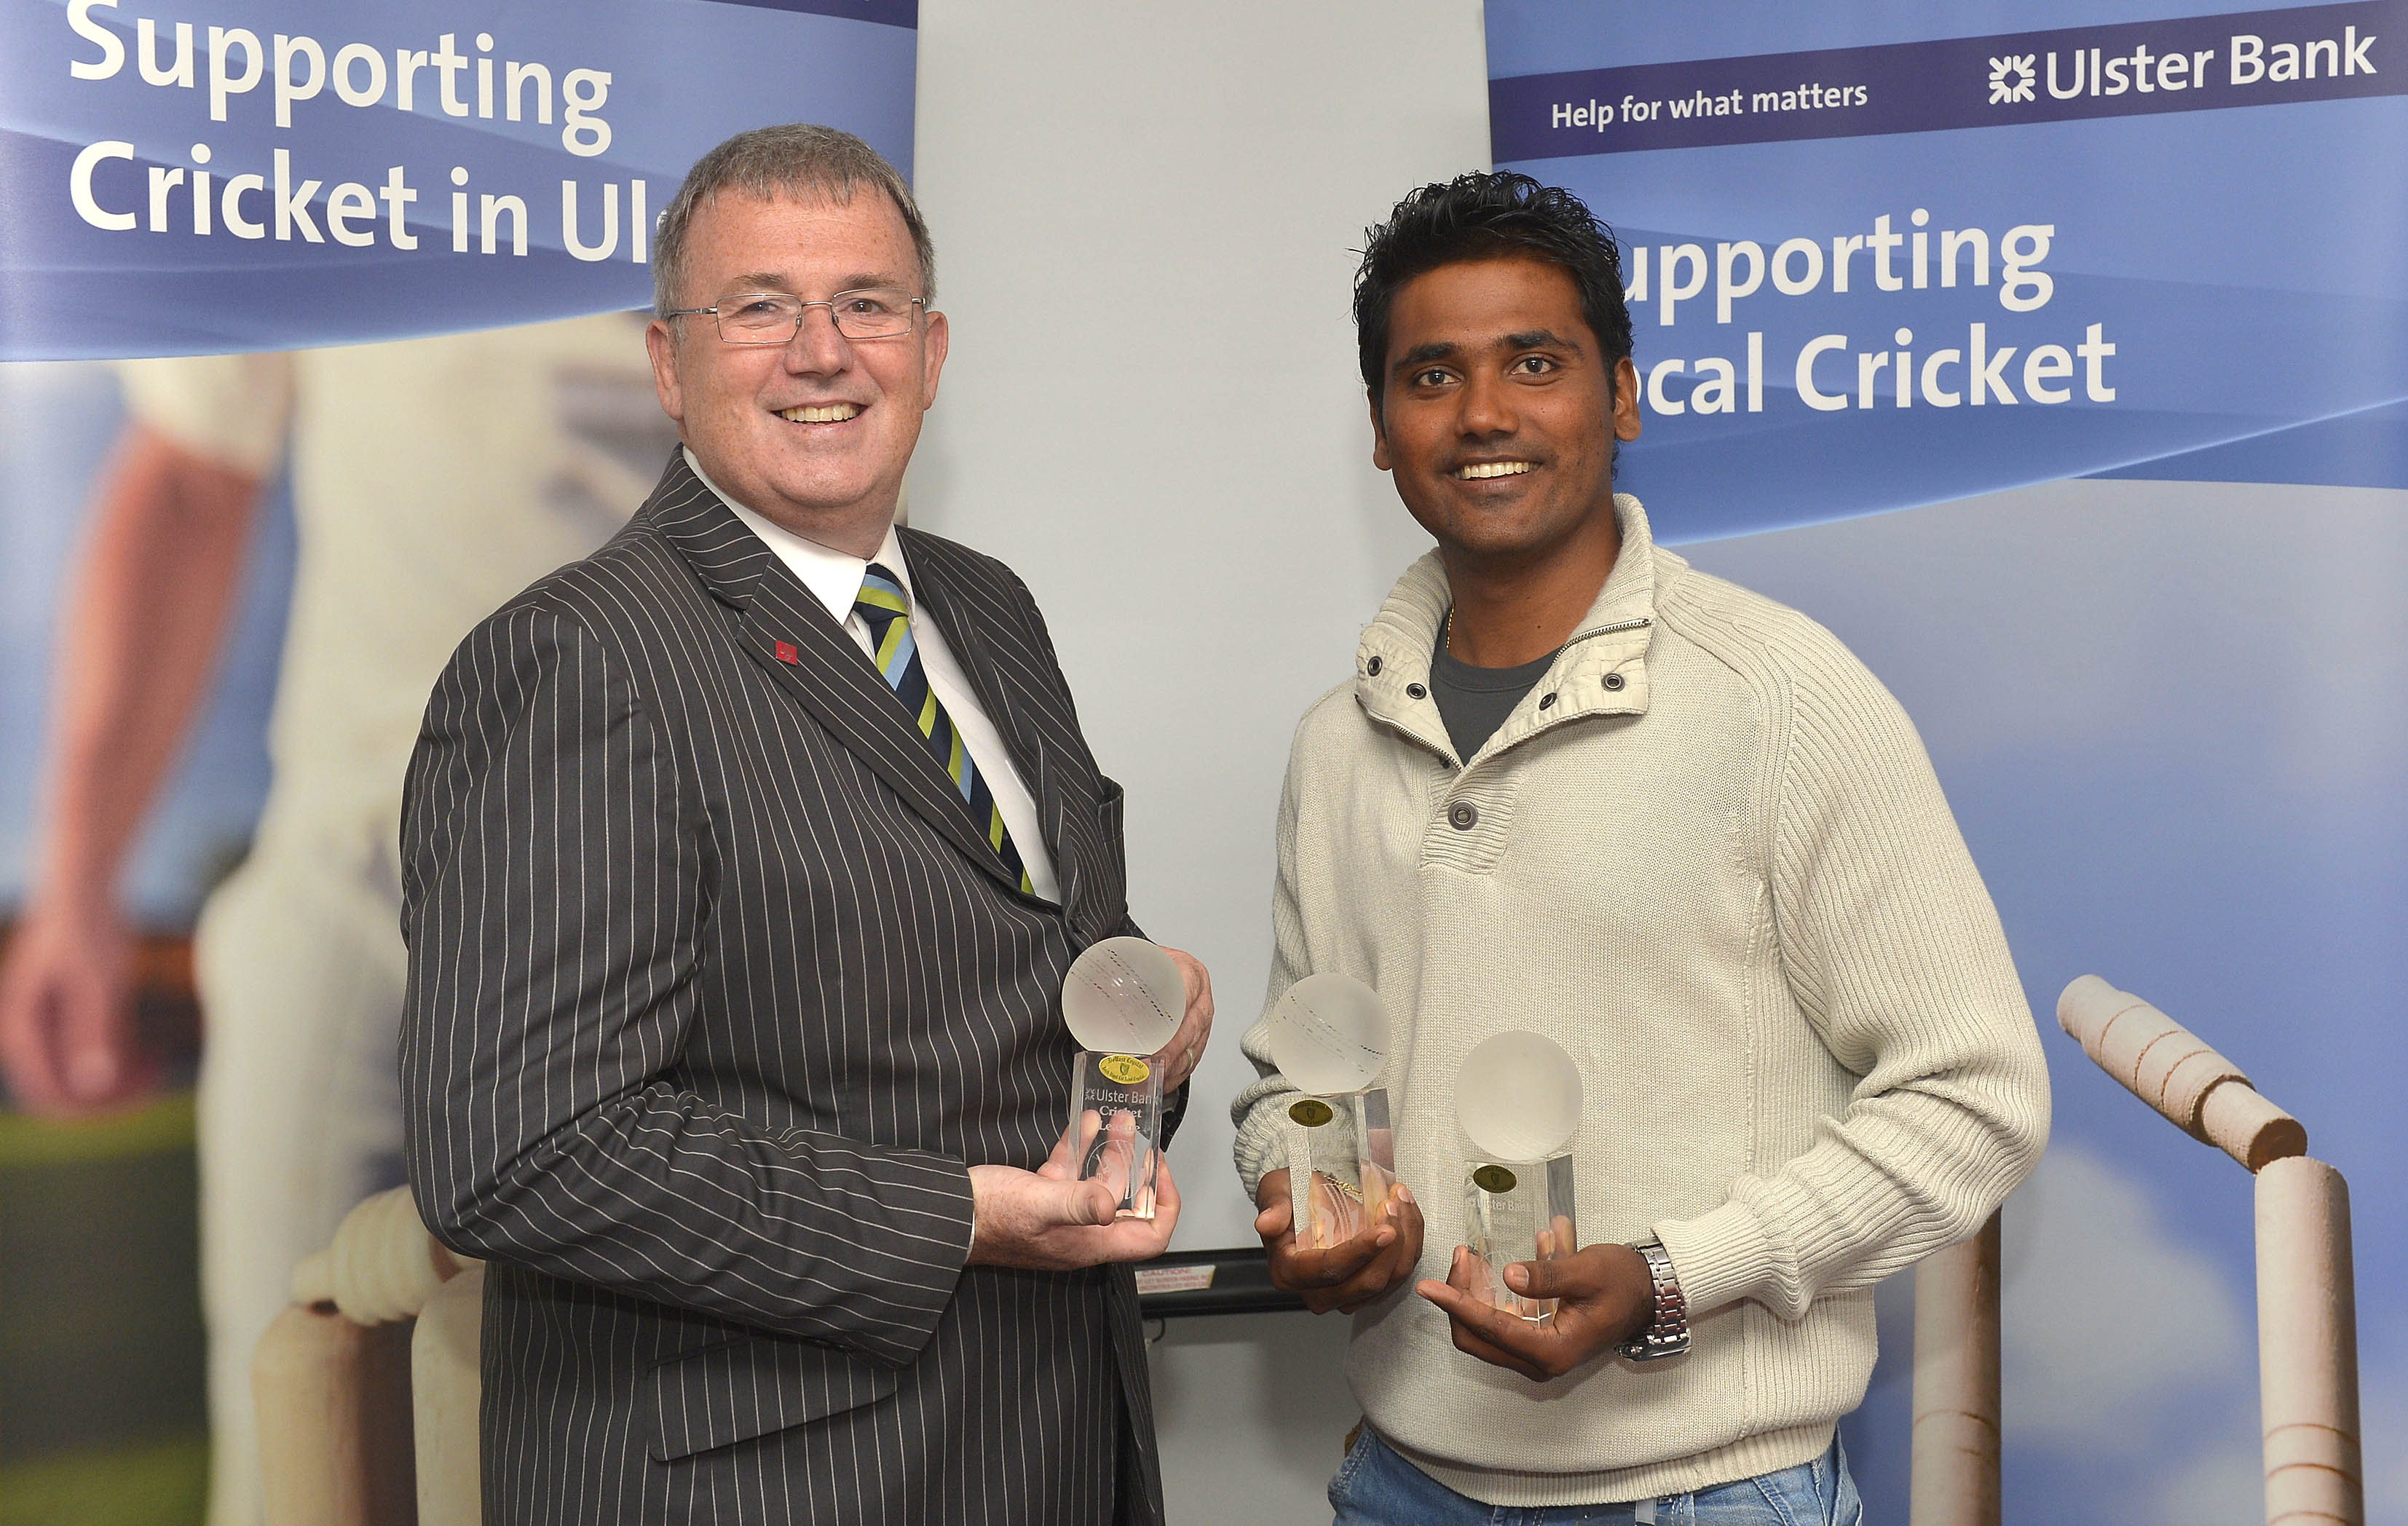 Ulster Bank Cricket Awards - Yogesh Takawale